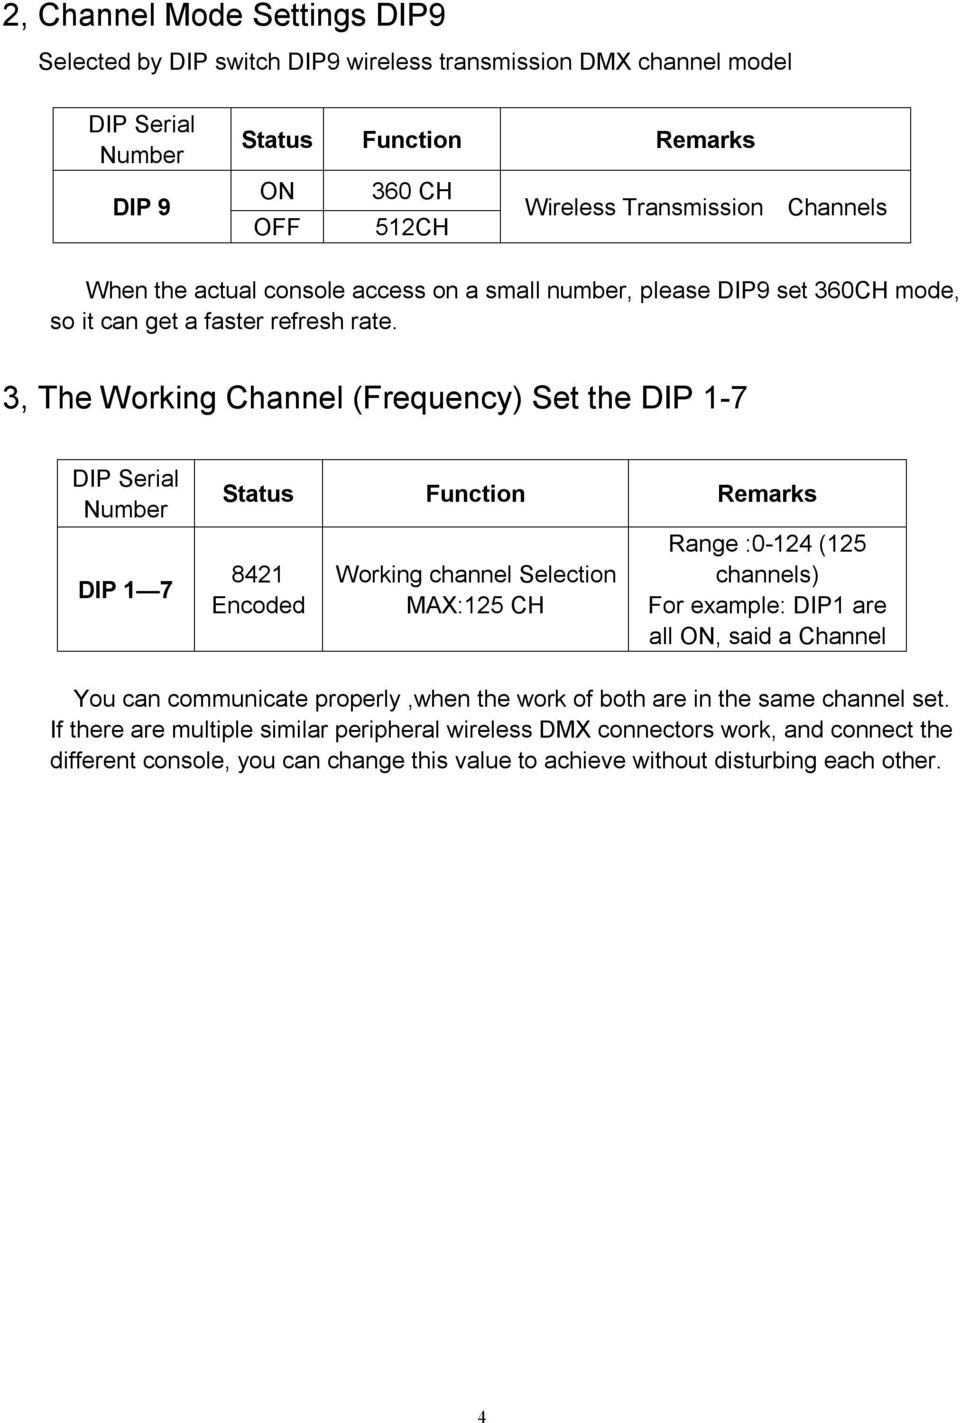 3, The Working Channel (Frequency) Set the DIP 1-7 DIP 1 7 Status Function Remarks 8421 Encoded Working channel Selection MAX:125 CH Range :0-124 (125 channels) For example: DIP1 are all